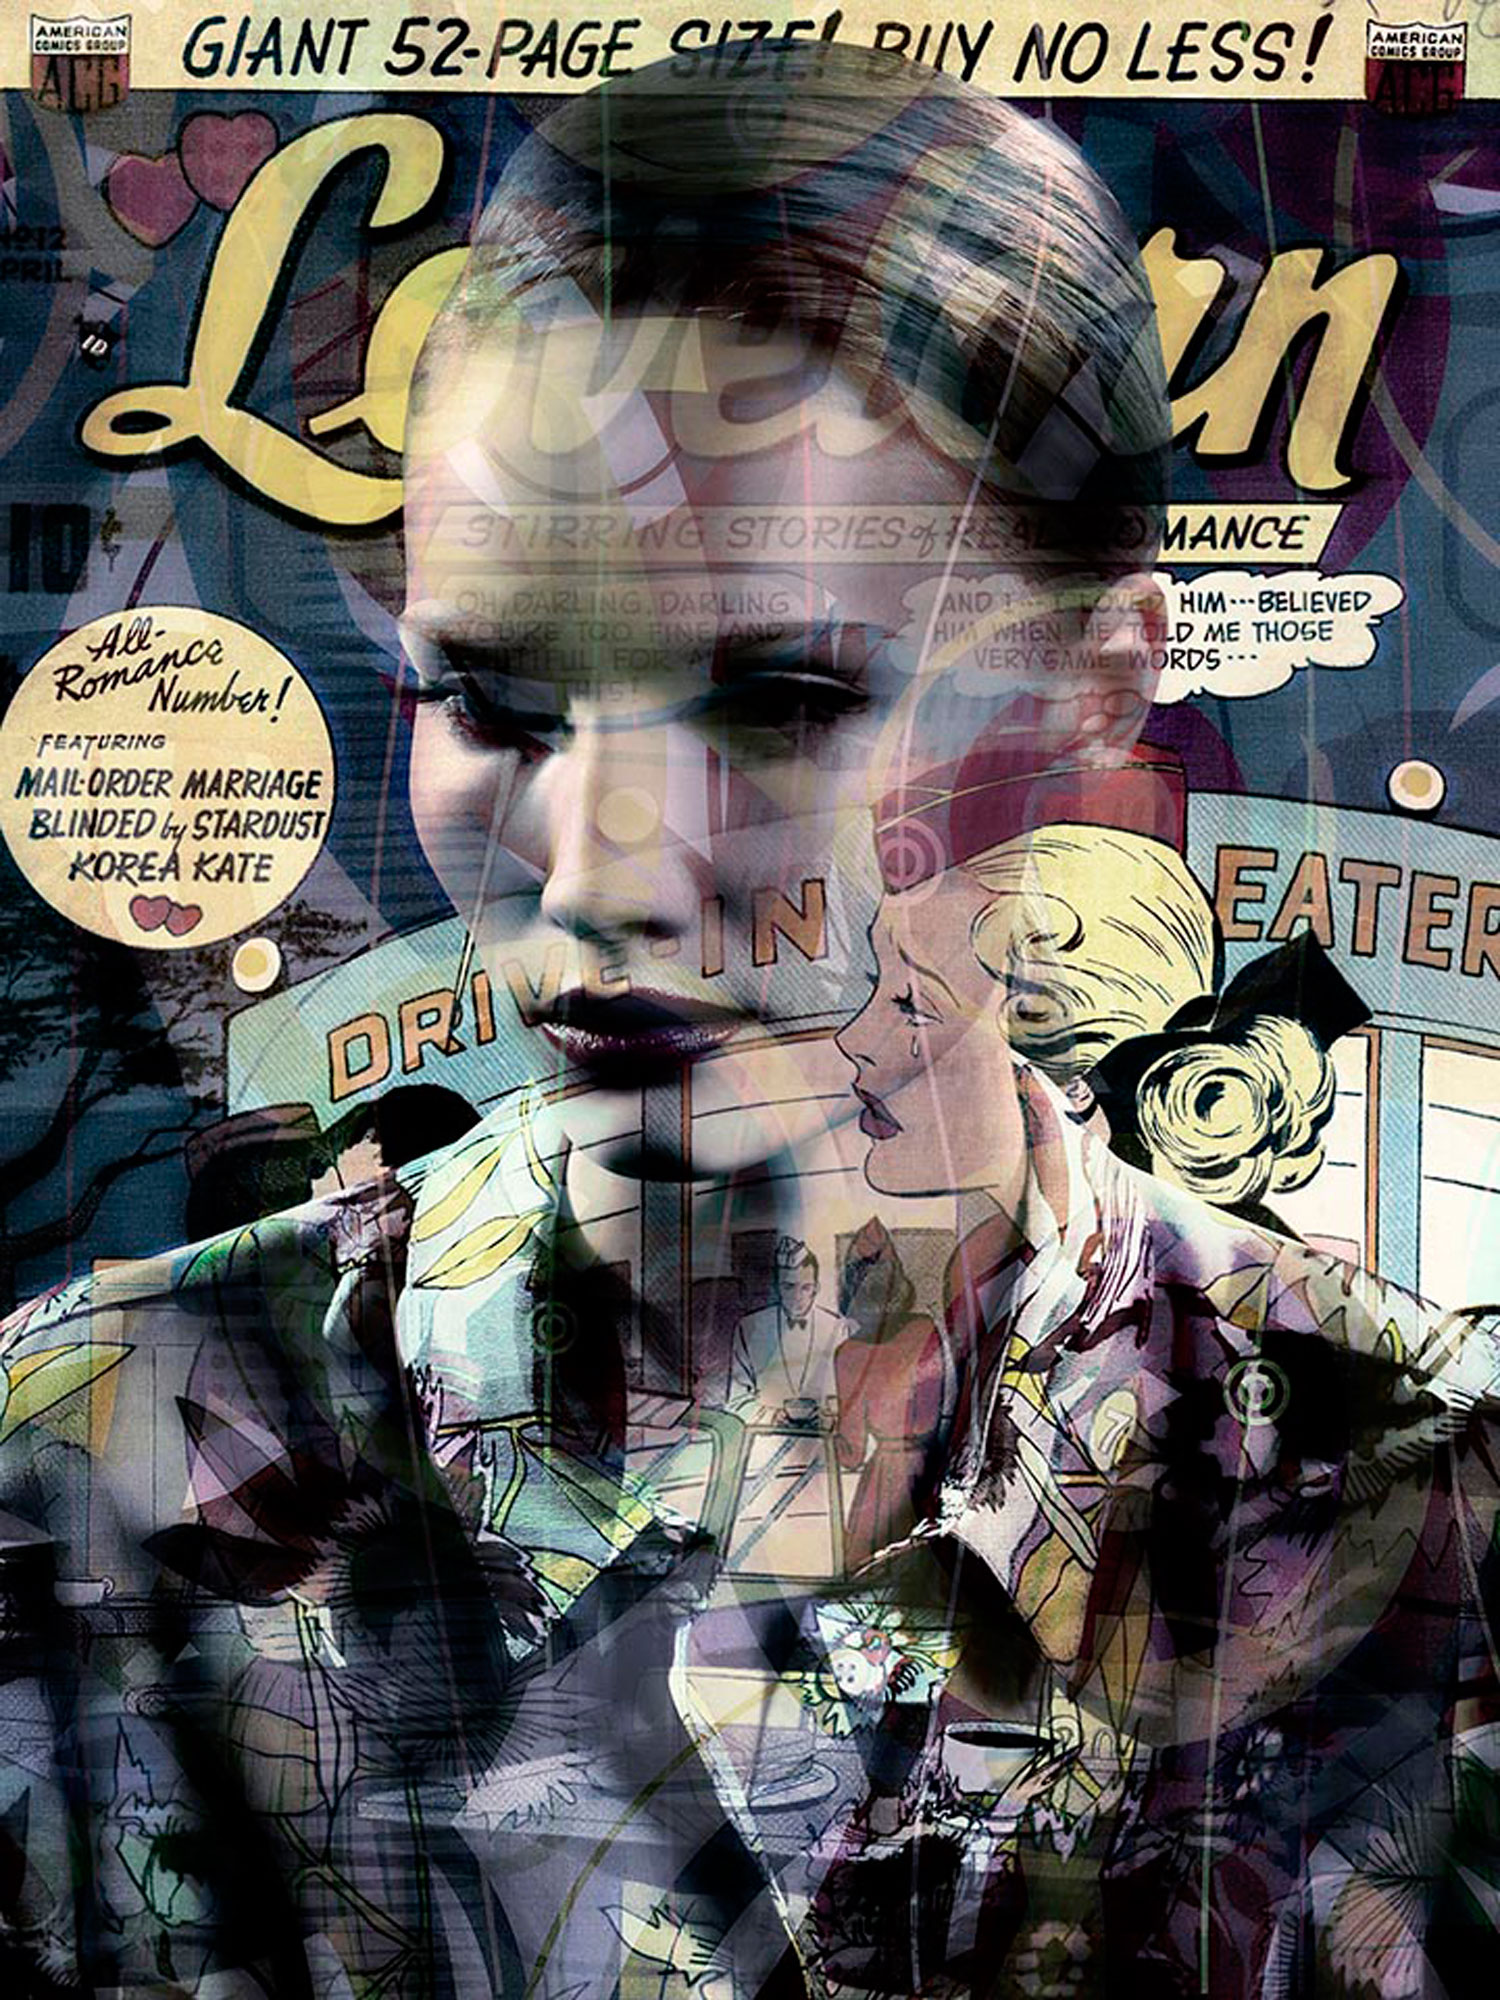 Comic Books Mingle with Old Hollywood Glamor in Pop Overlays - VICE